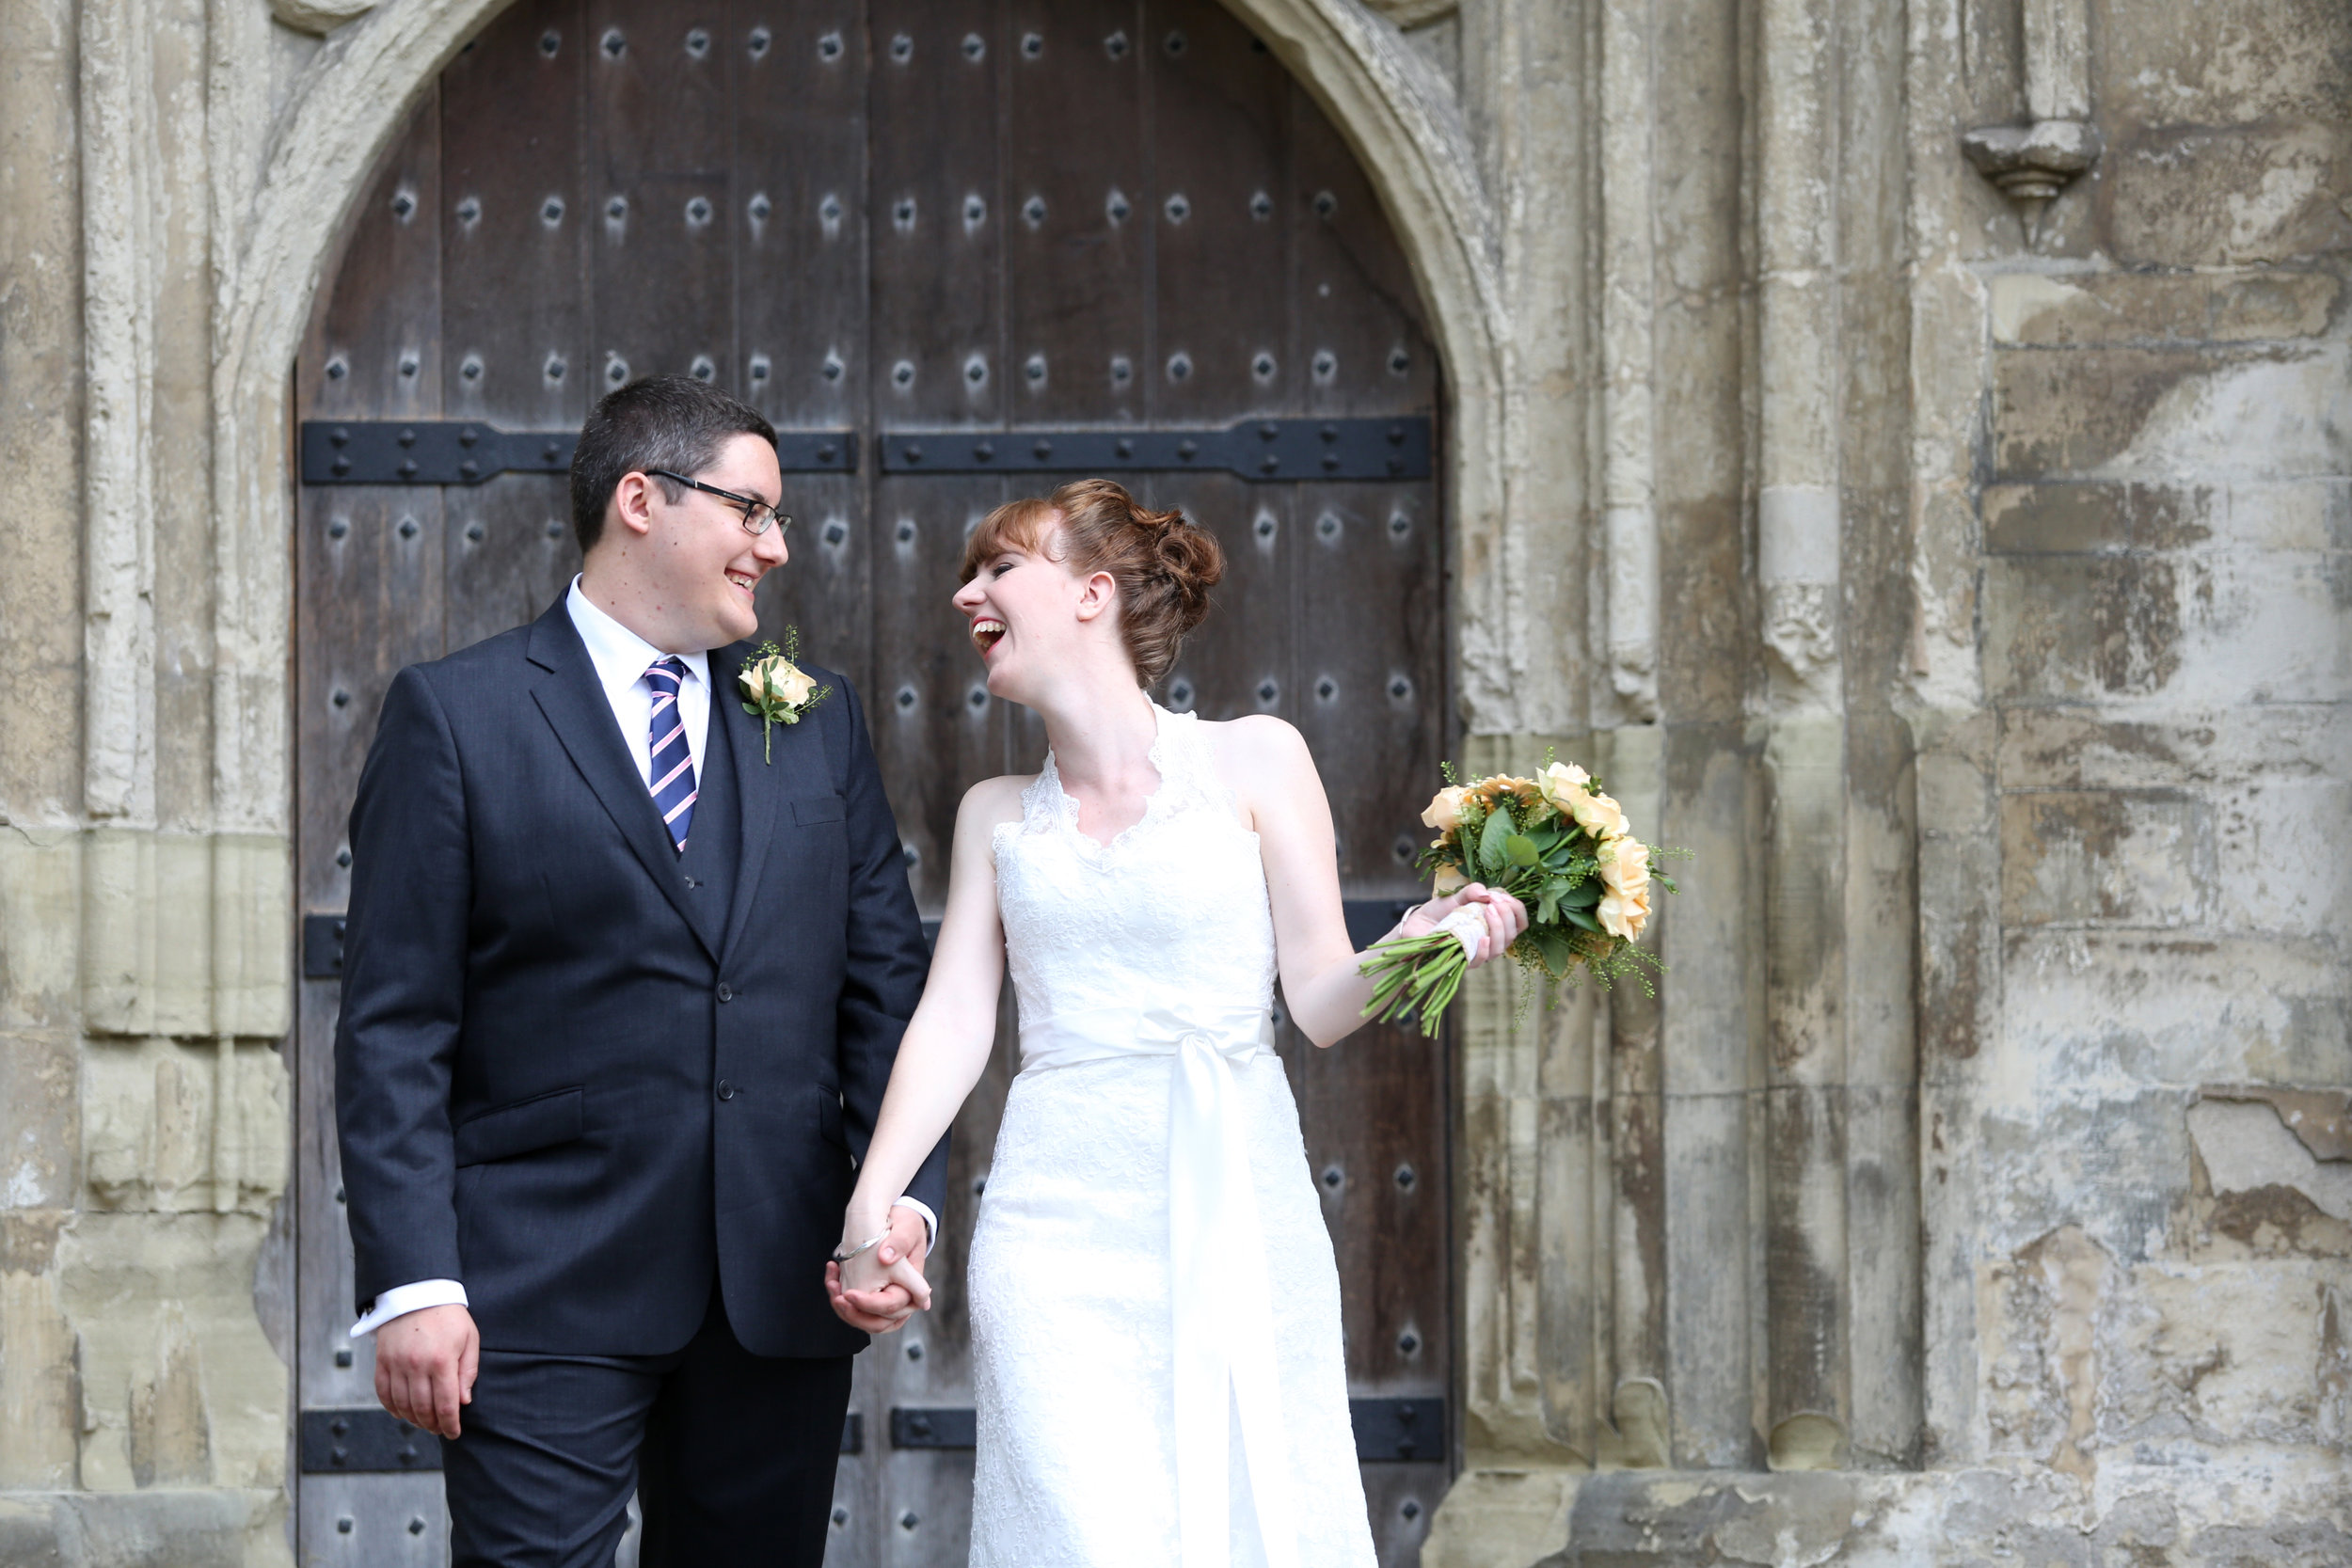 JELLYFISH WEDDING PHOTOGRAPHY THE PRIORY ST PETER CHURCH DUNSTABLE (41).jpg